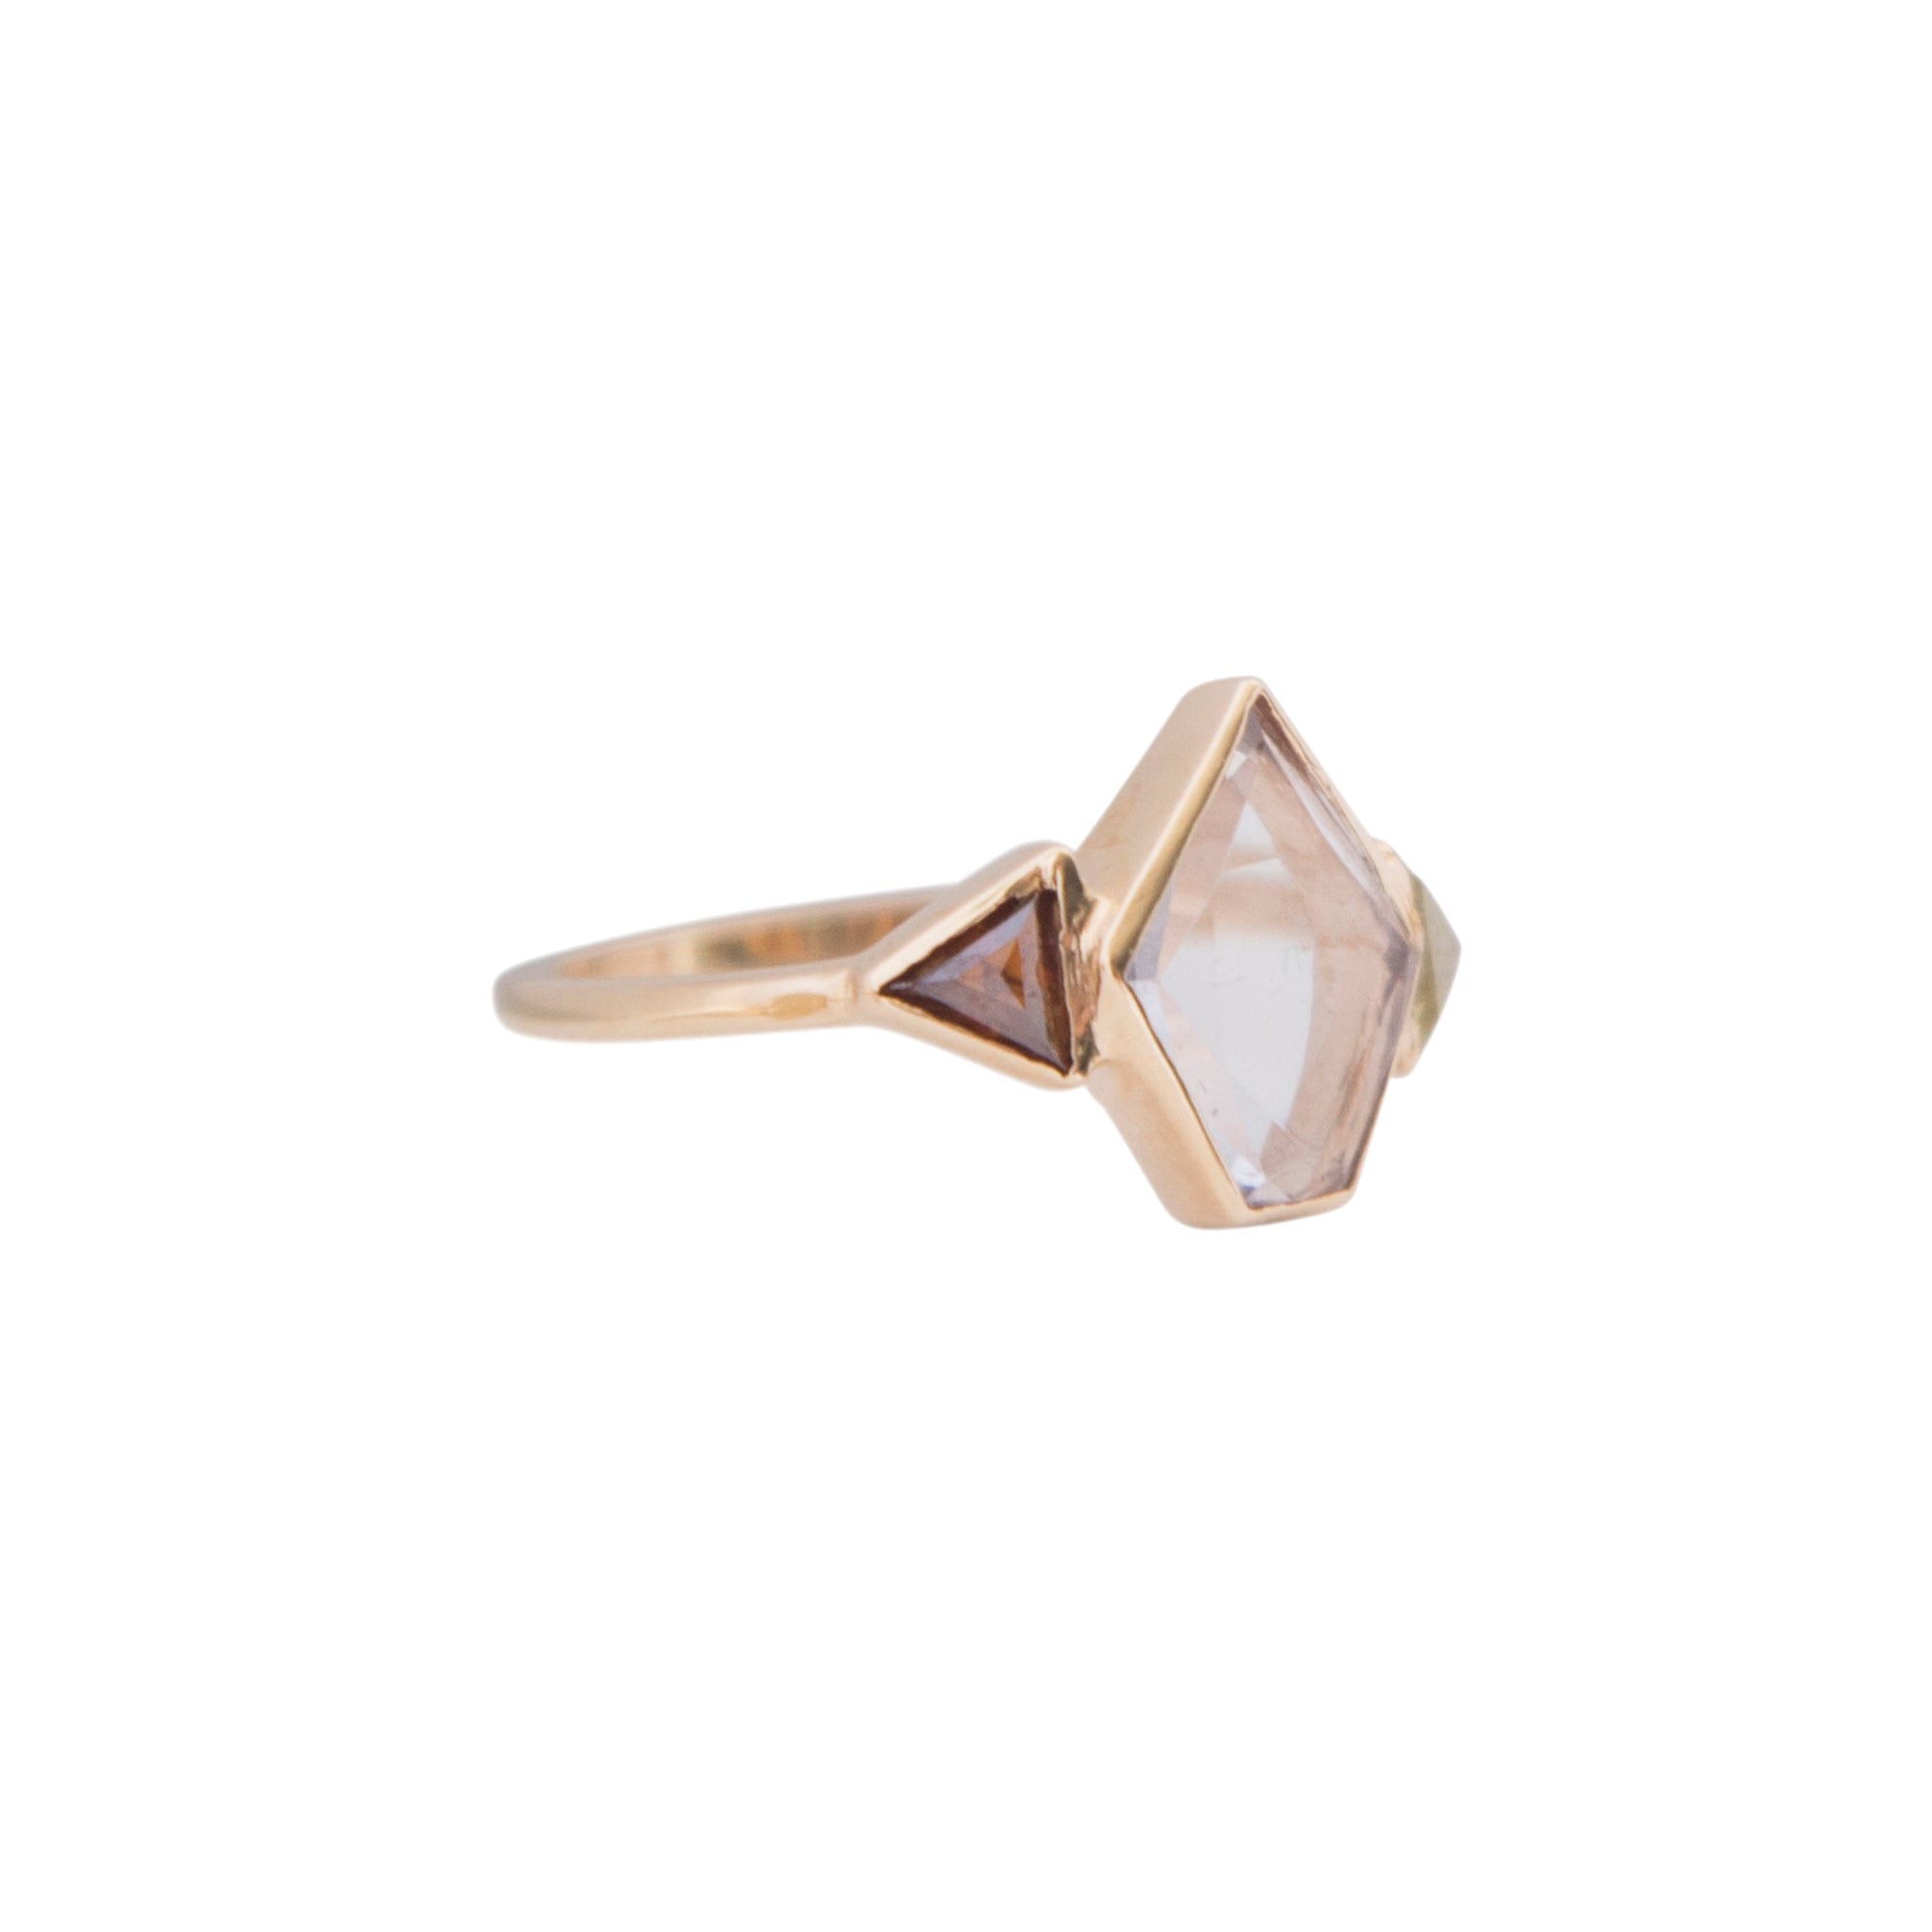 Gold Diamond Bridal Love Arrow Engagement Ring by Xiao Wang for Broken English Jewelry